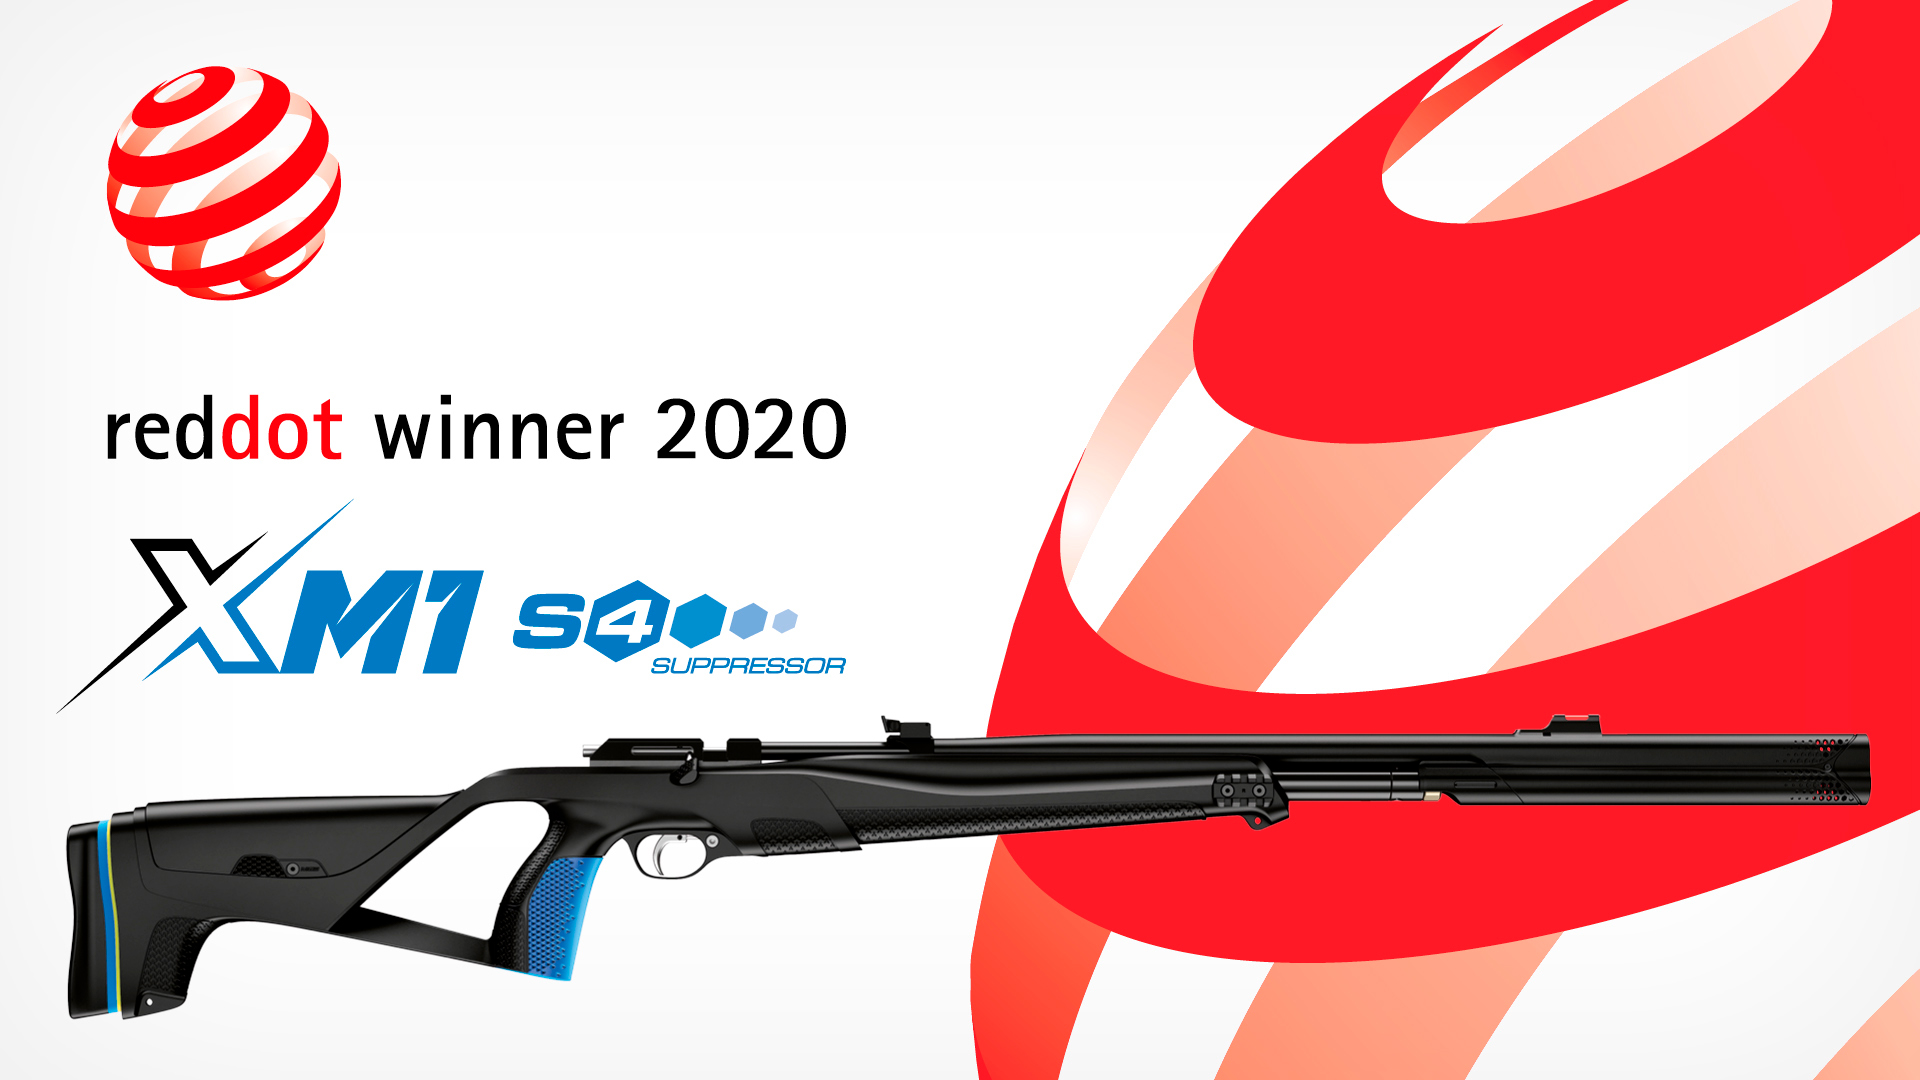 Red Dot 2020 News